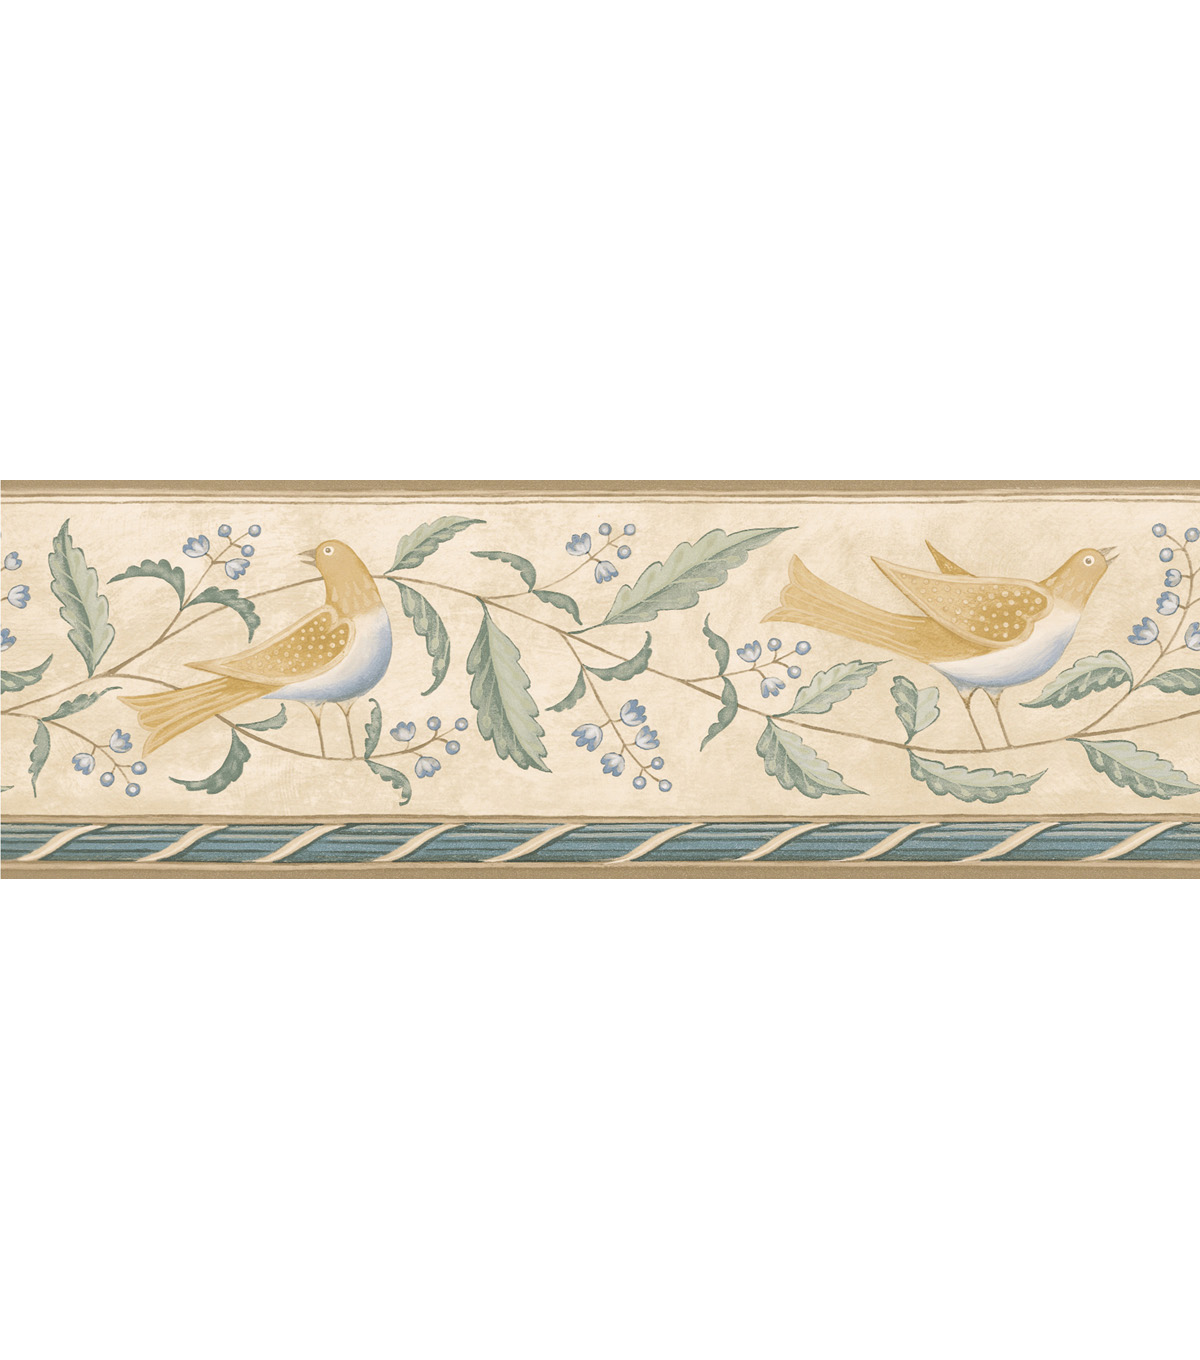 Bird Wallpaper Border CreamFolk Art Floral Bird Wallpaper Border 1200x1360